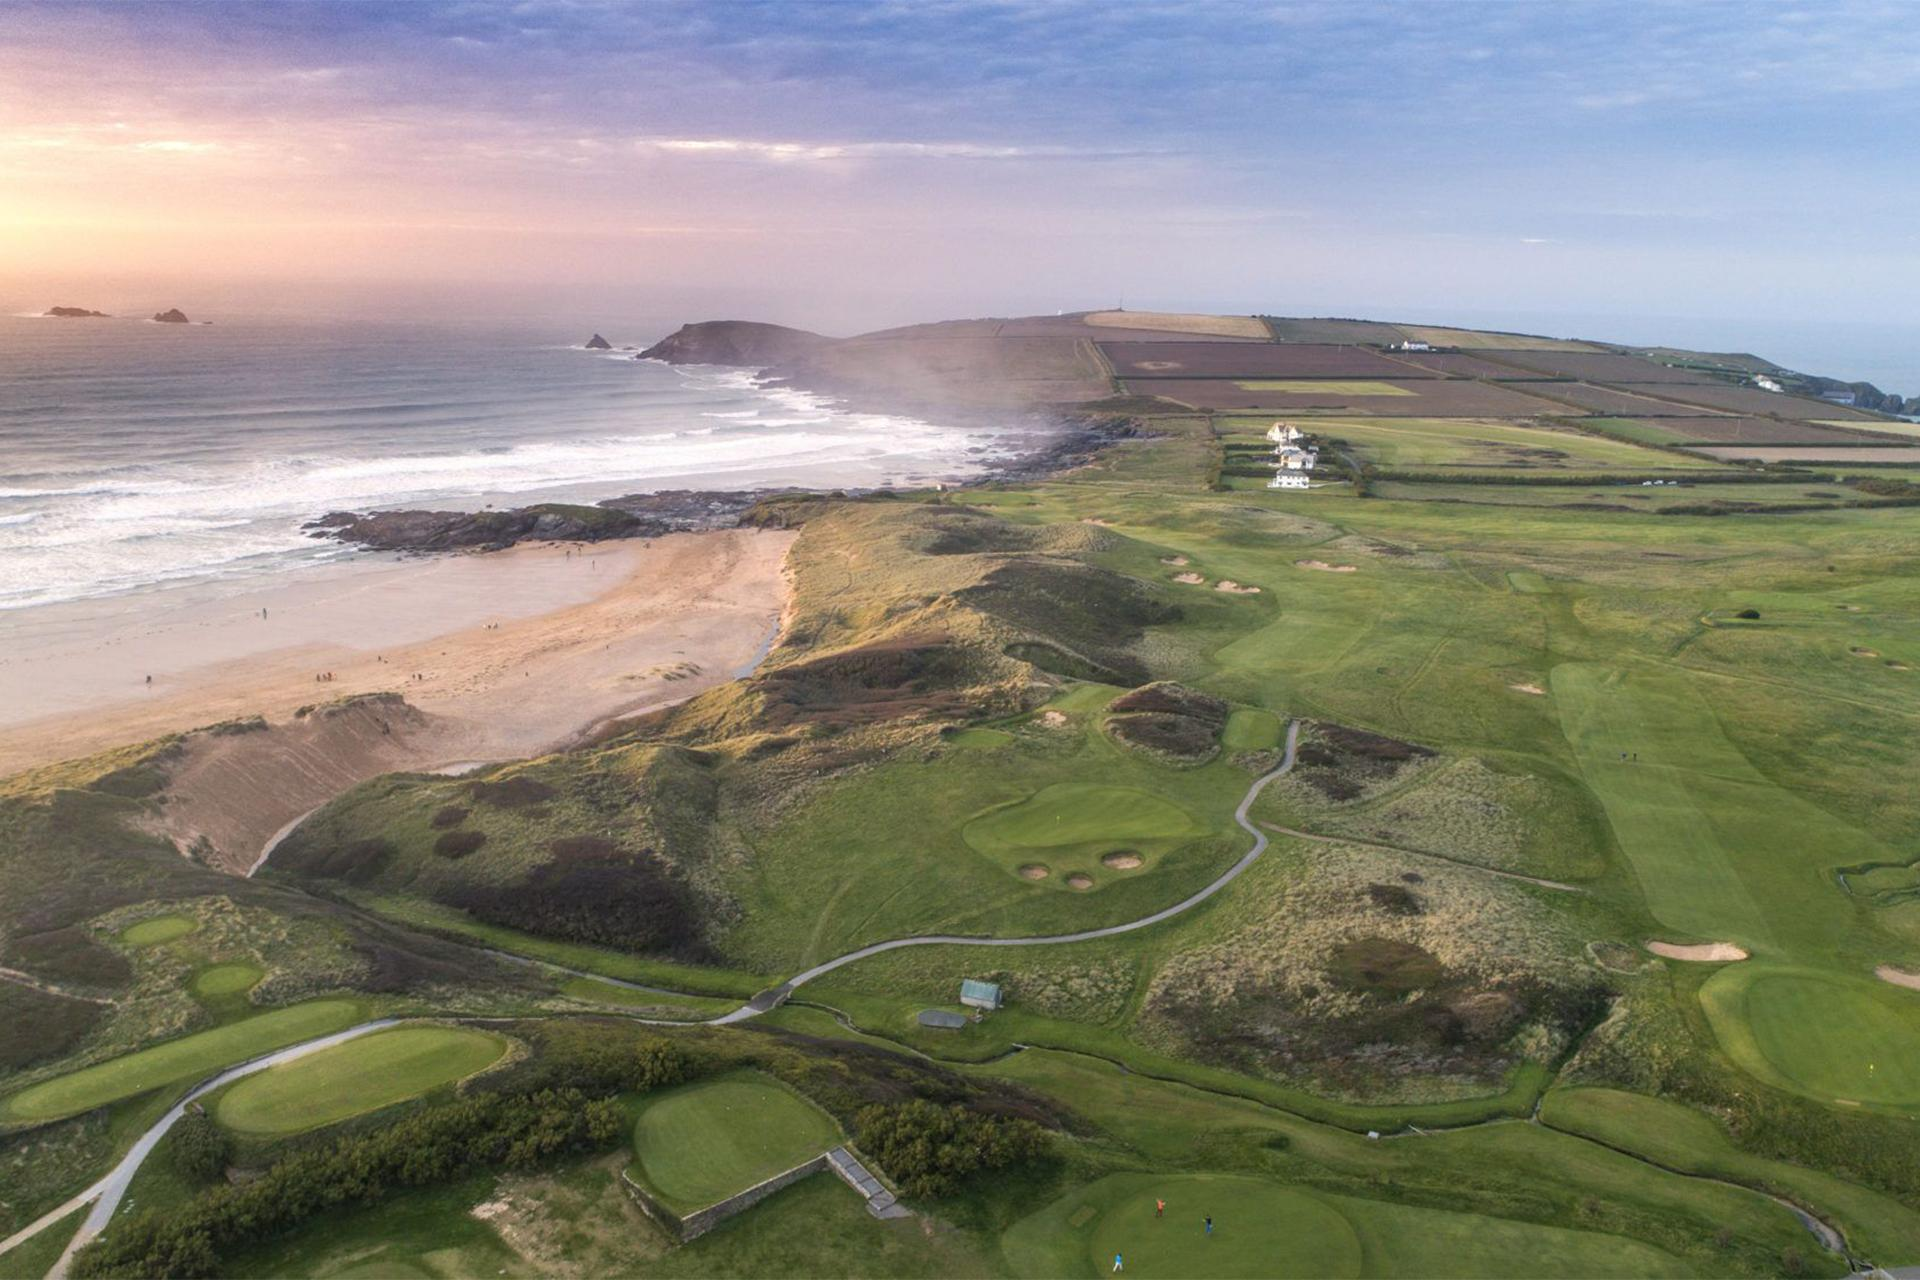 Trevose golf course – one of the best golf breaks in England